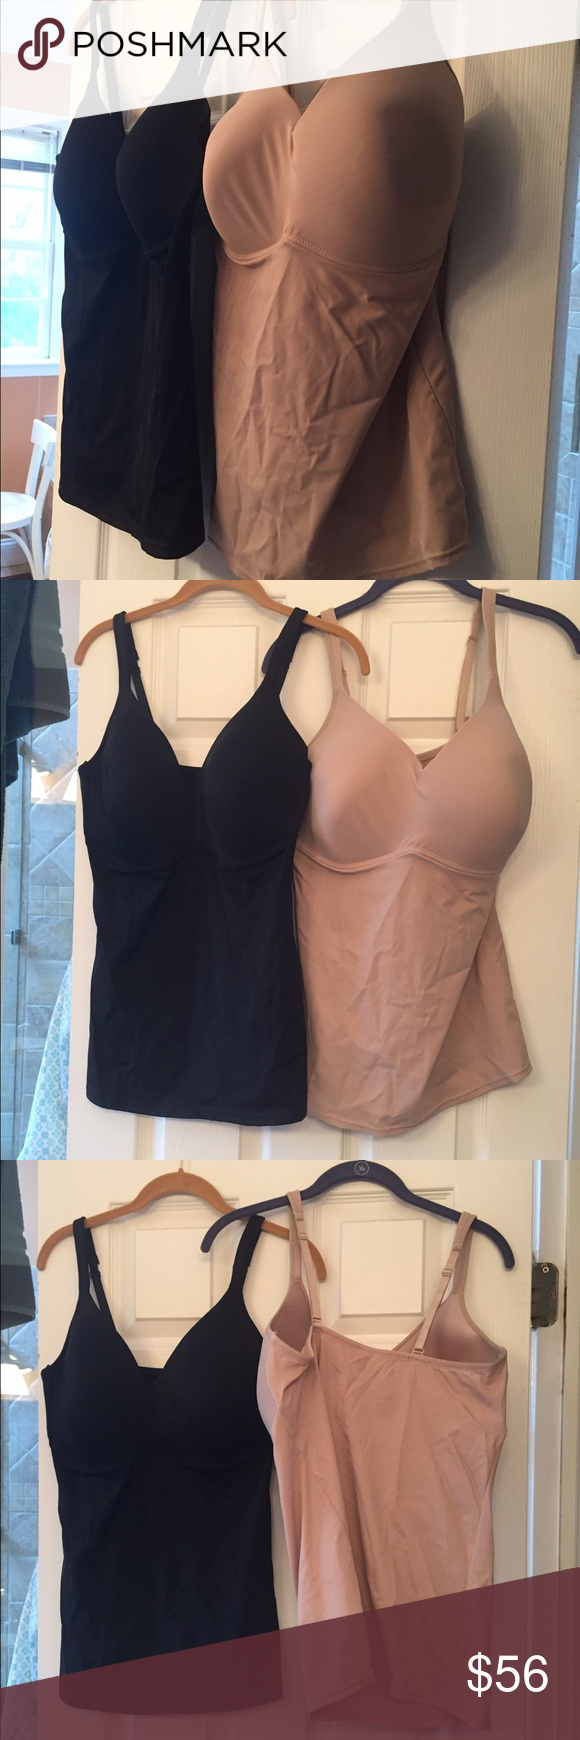 NWT BUNDLE SPECIAL! 2 BRA SHAPERS, size 2X!! NWT BUNDLE SPECIAL!!  2BRA SHAPERS, black and beige, adjustable straps, spandex & nylon, Rhonda Shear, HSN Rhonda Shear Intimates & Sleepwear Shapewear